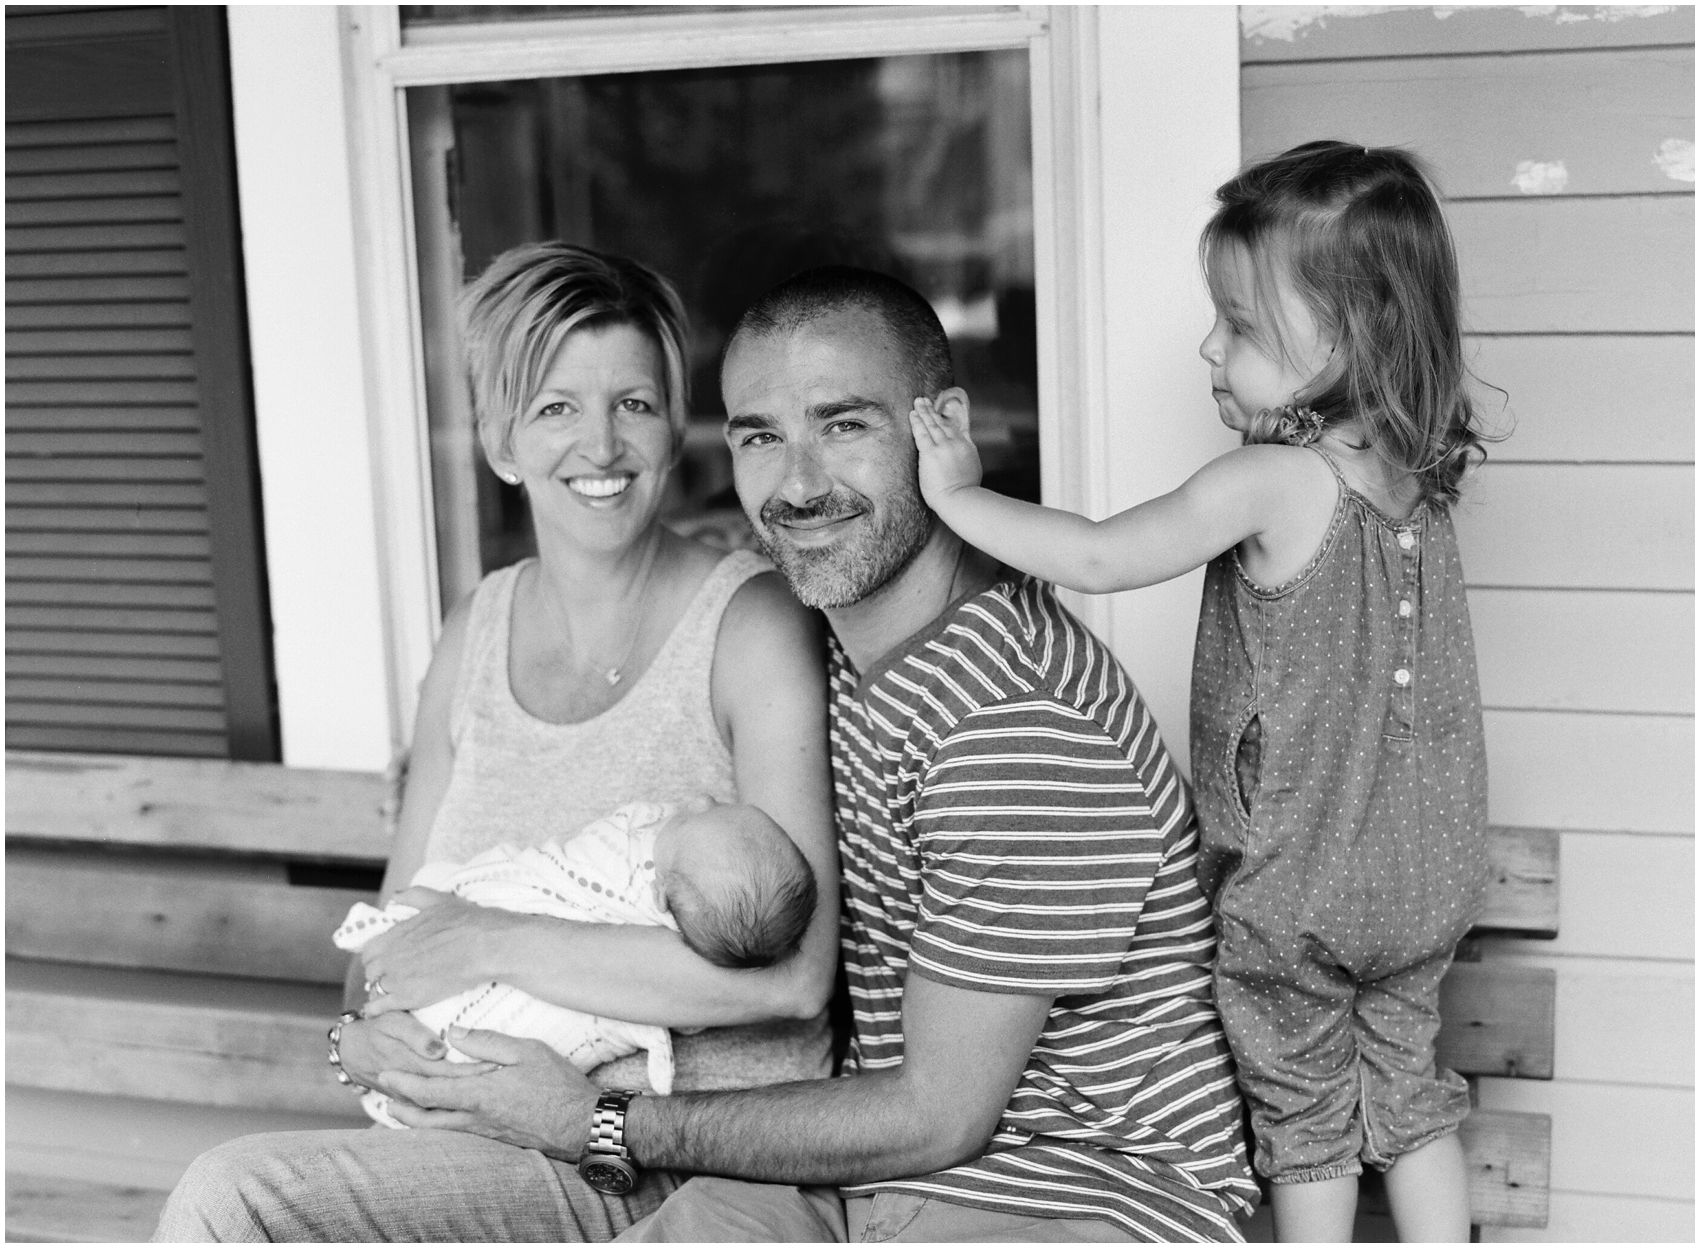 beautiful portrait of family outside their home with two kids